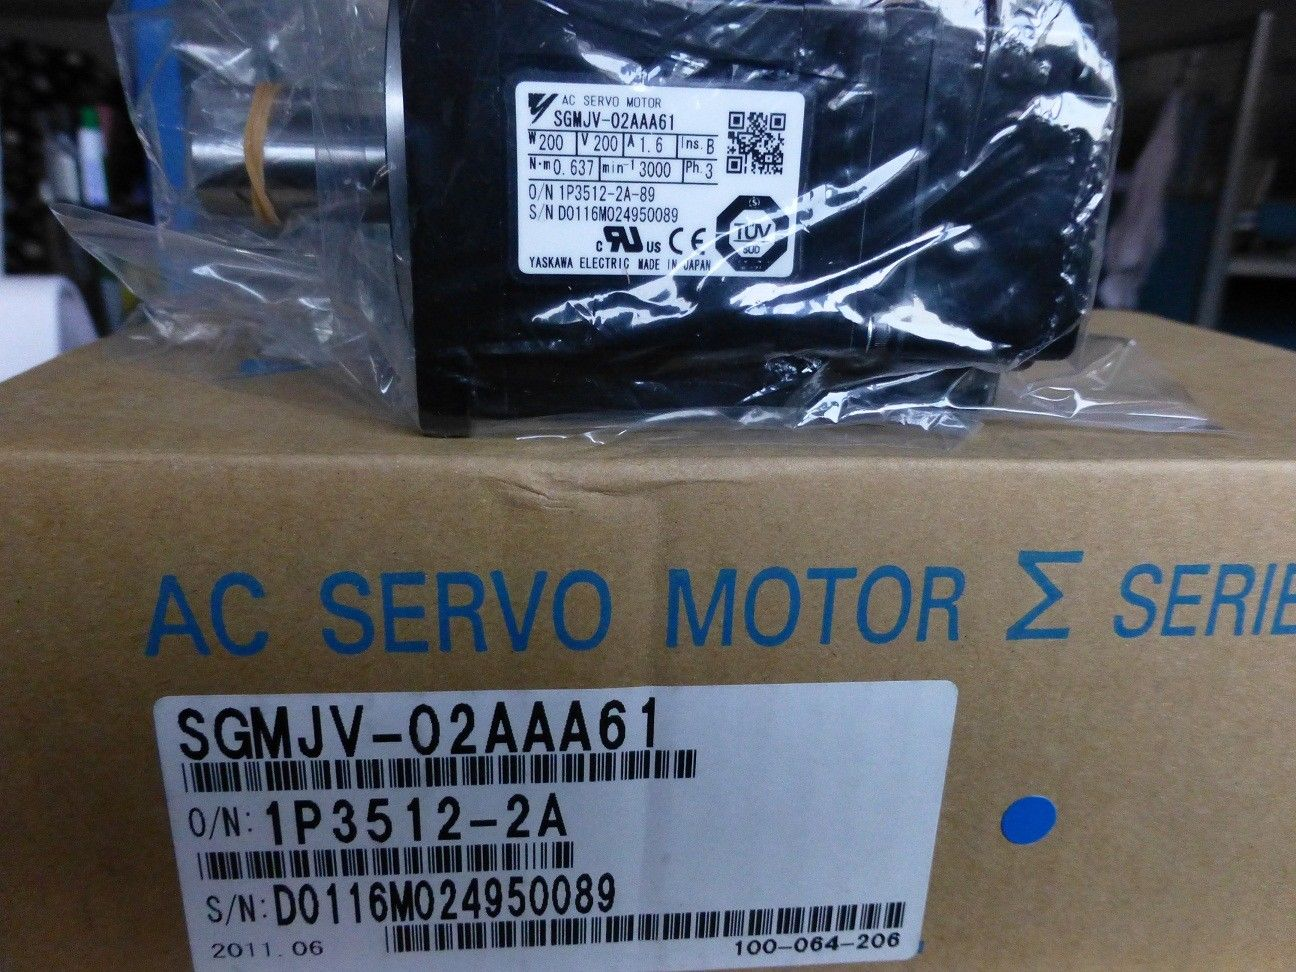 NEW YASKAWA SERVO MOTOR 200V 3PH 200W SGMJV-02AAA61 IN BOX